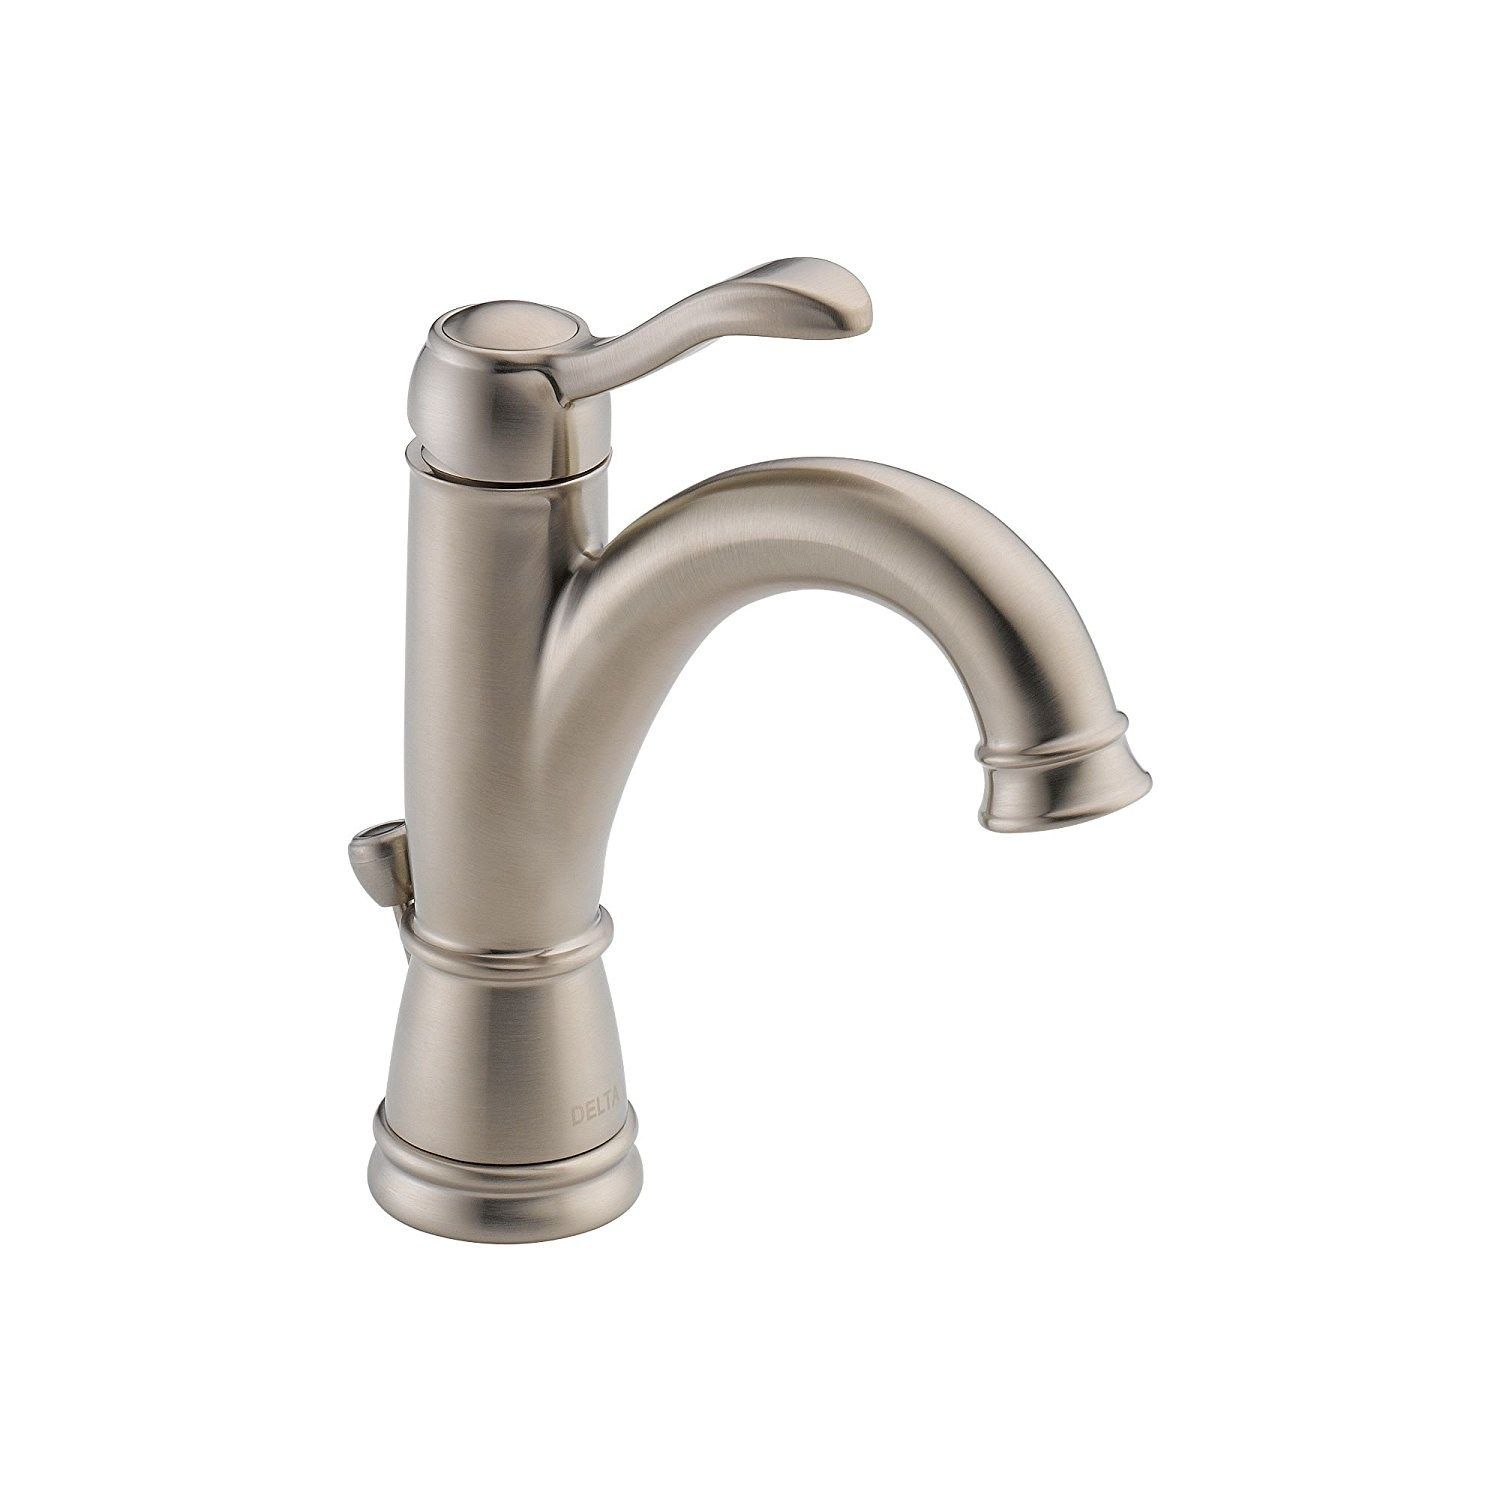 Unique Delta Touchless Bathroom Faucet Check More At  Https://homefurnitureone.com/